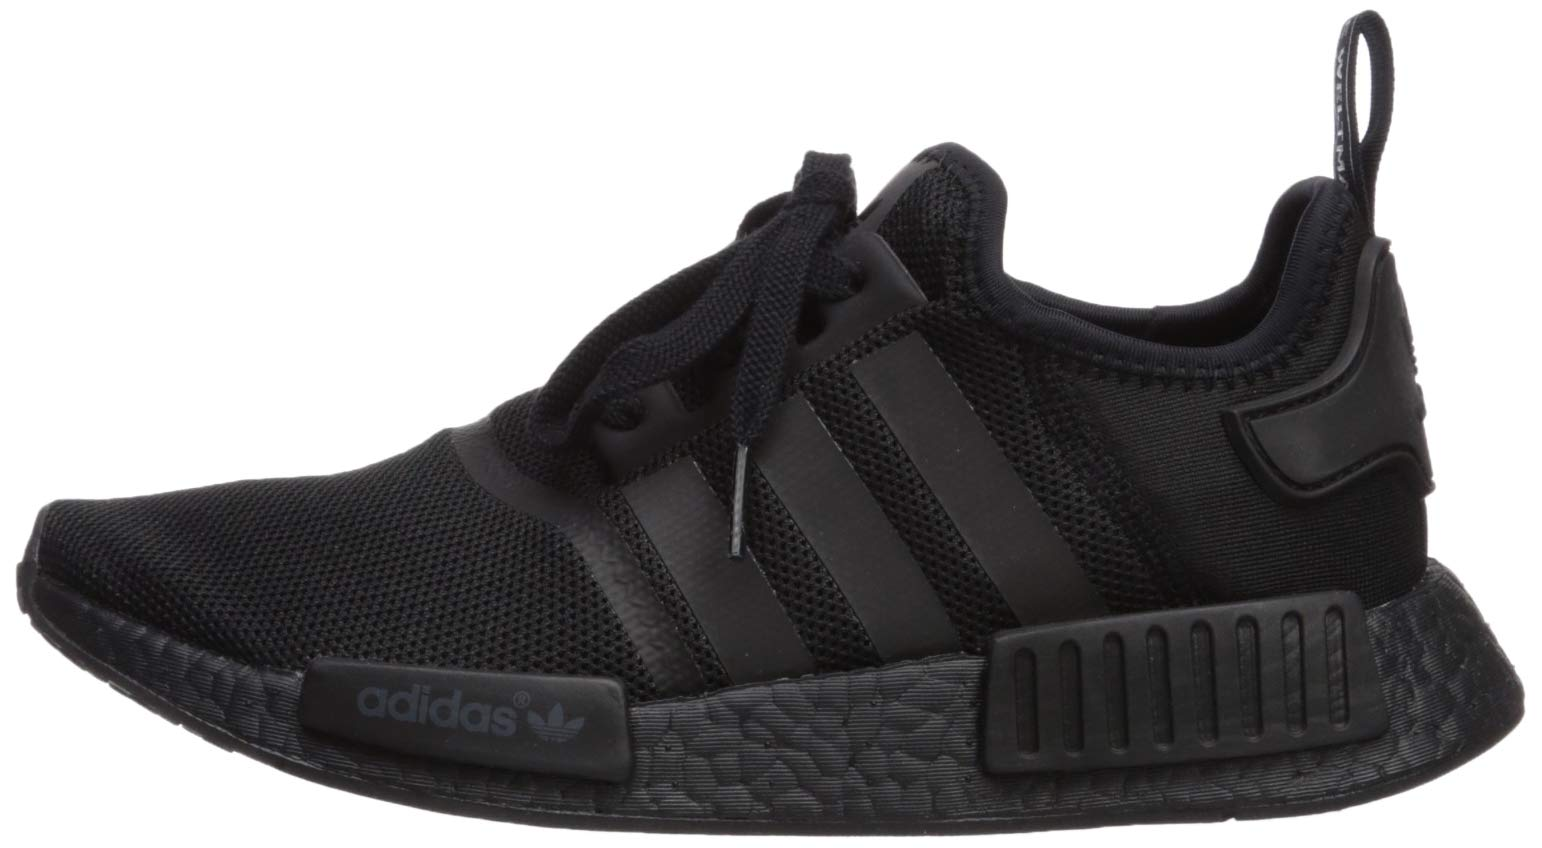 the best attitude 15a5b 88a48 Amazon.com: adidas NMD R1 'Triple Black' - S31508 - Size 9.5 ...